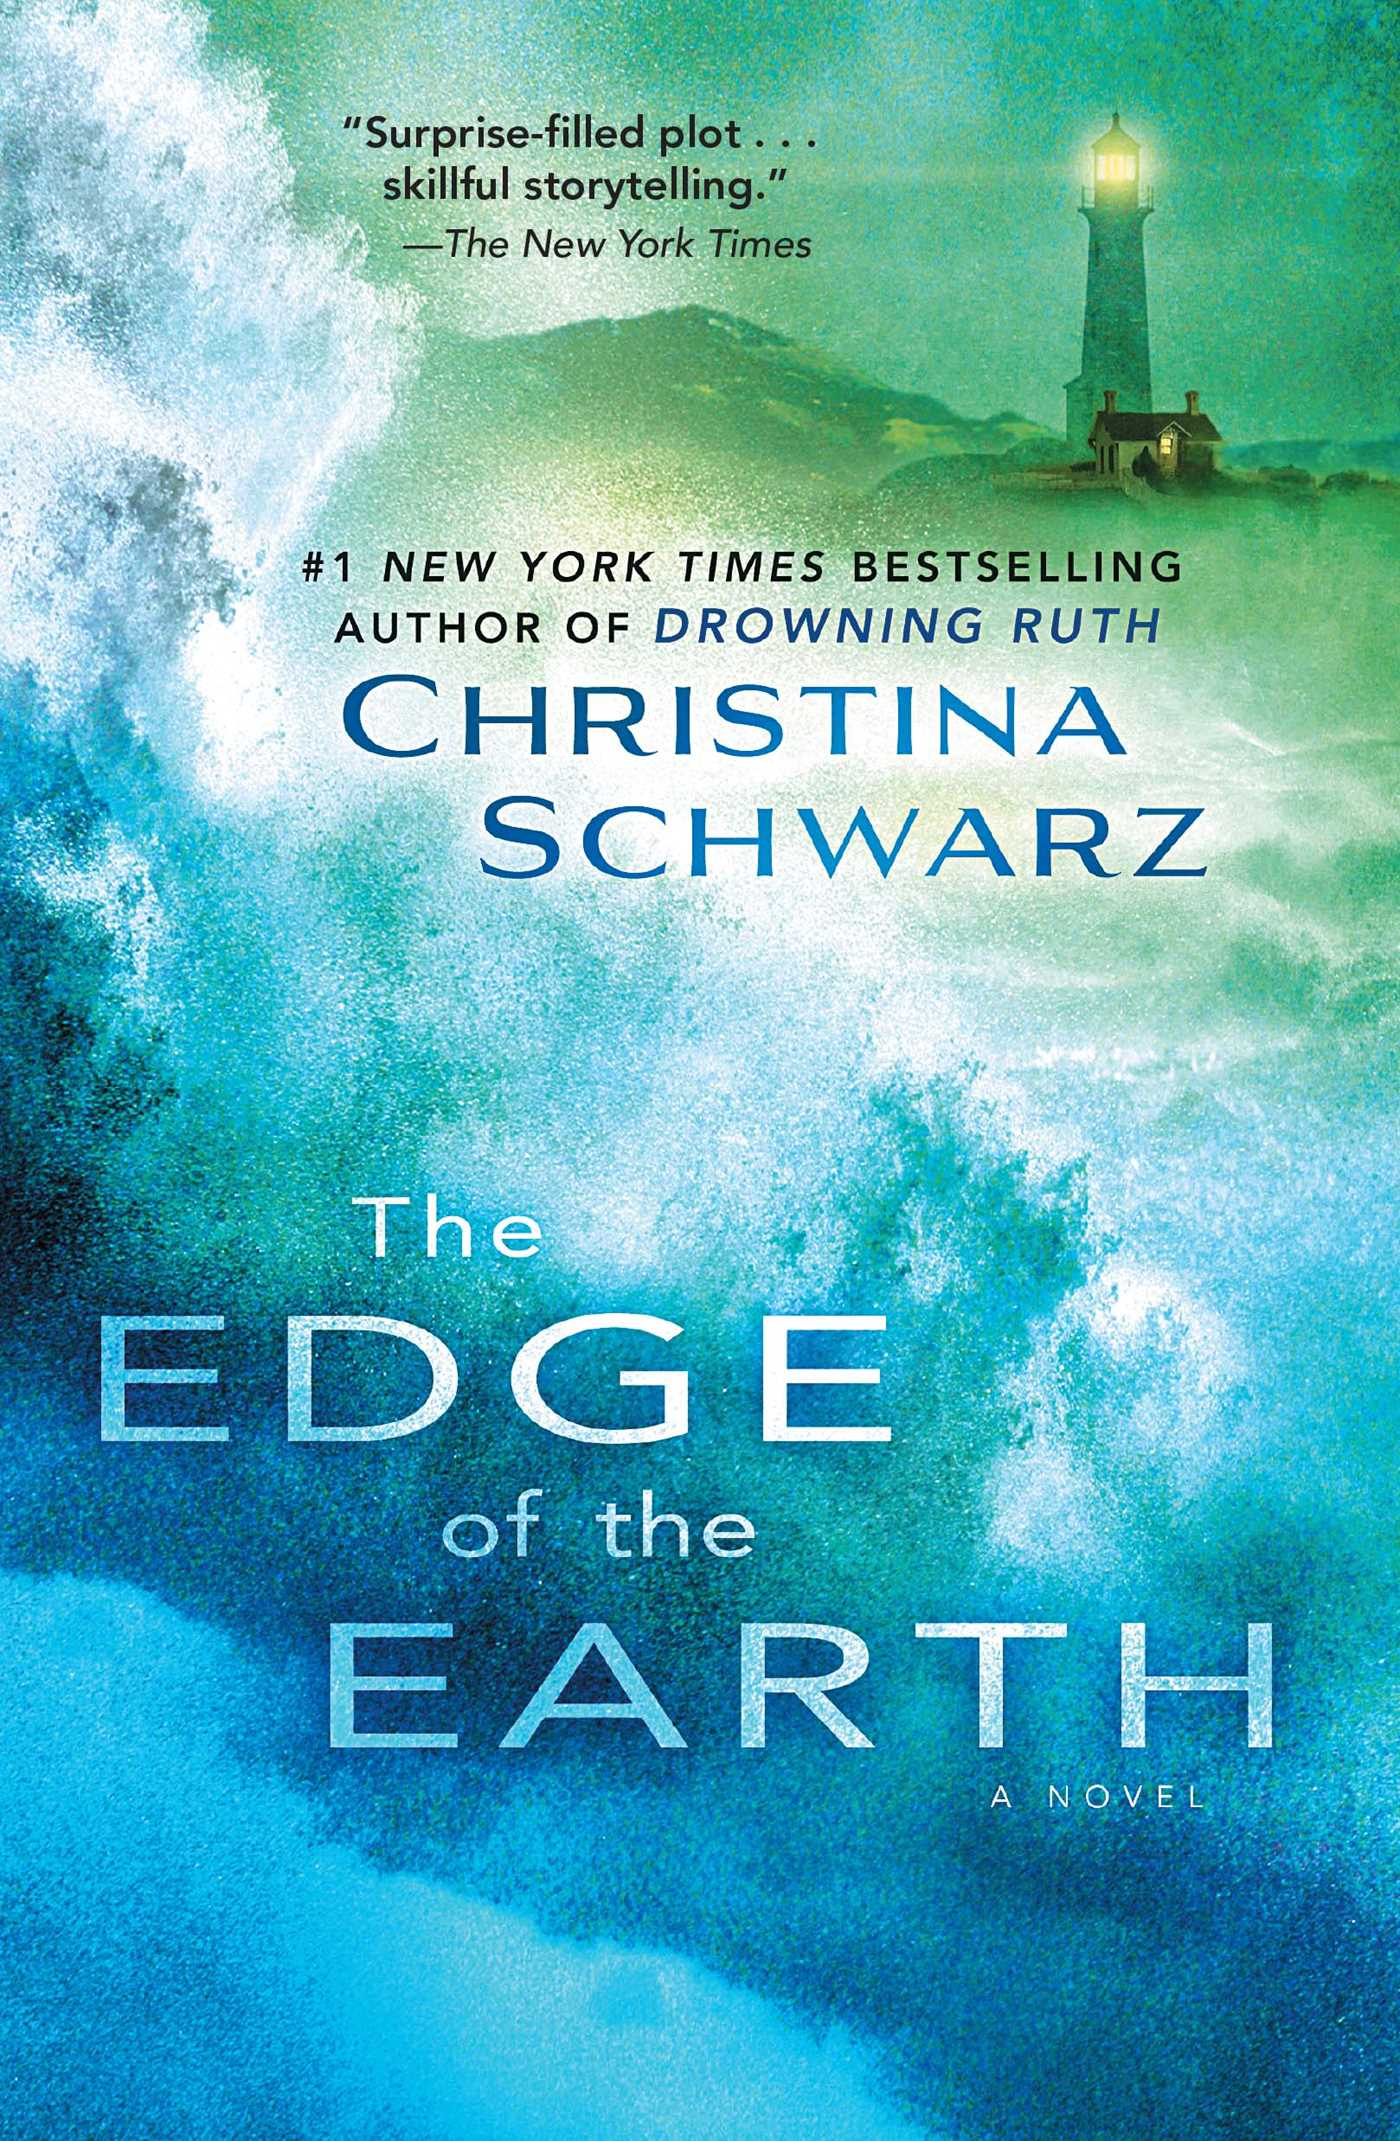 The-edge-of-the-earth-9781451683721_hr